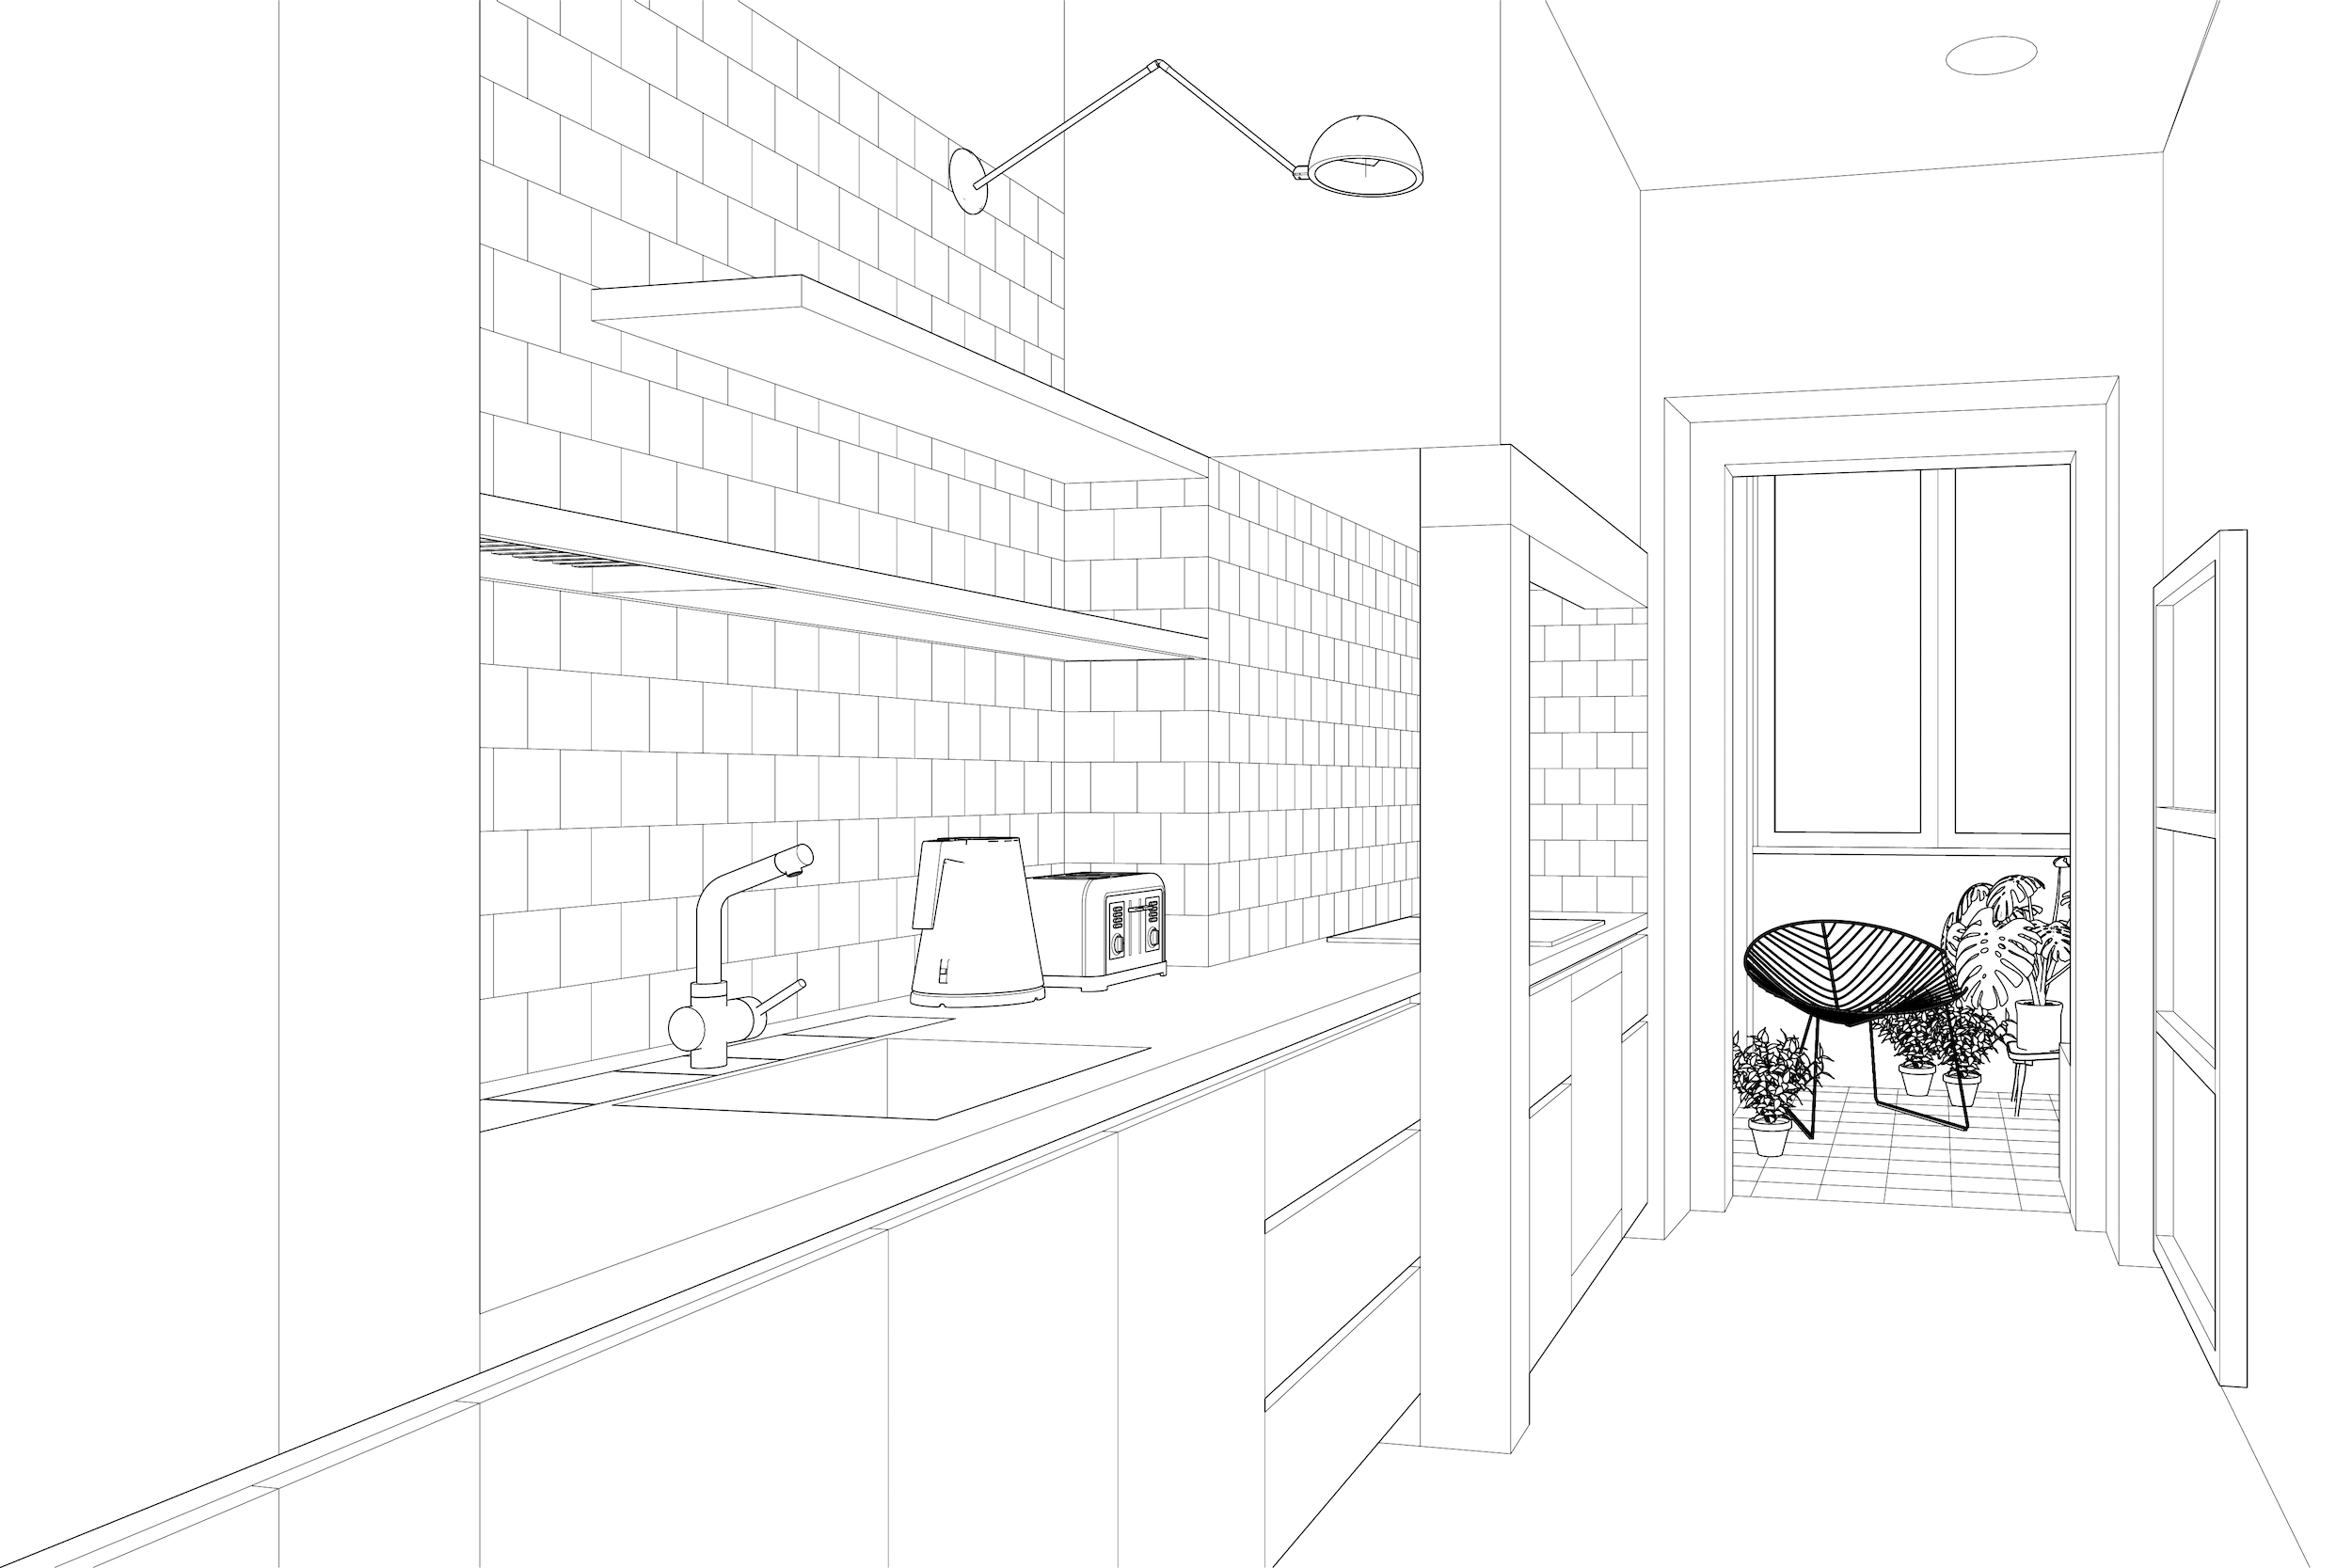 Line rendering of kitchen and sunroom of Penha da França Apartment project by Lola Cwikowski Studio